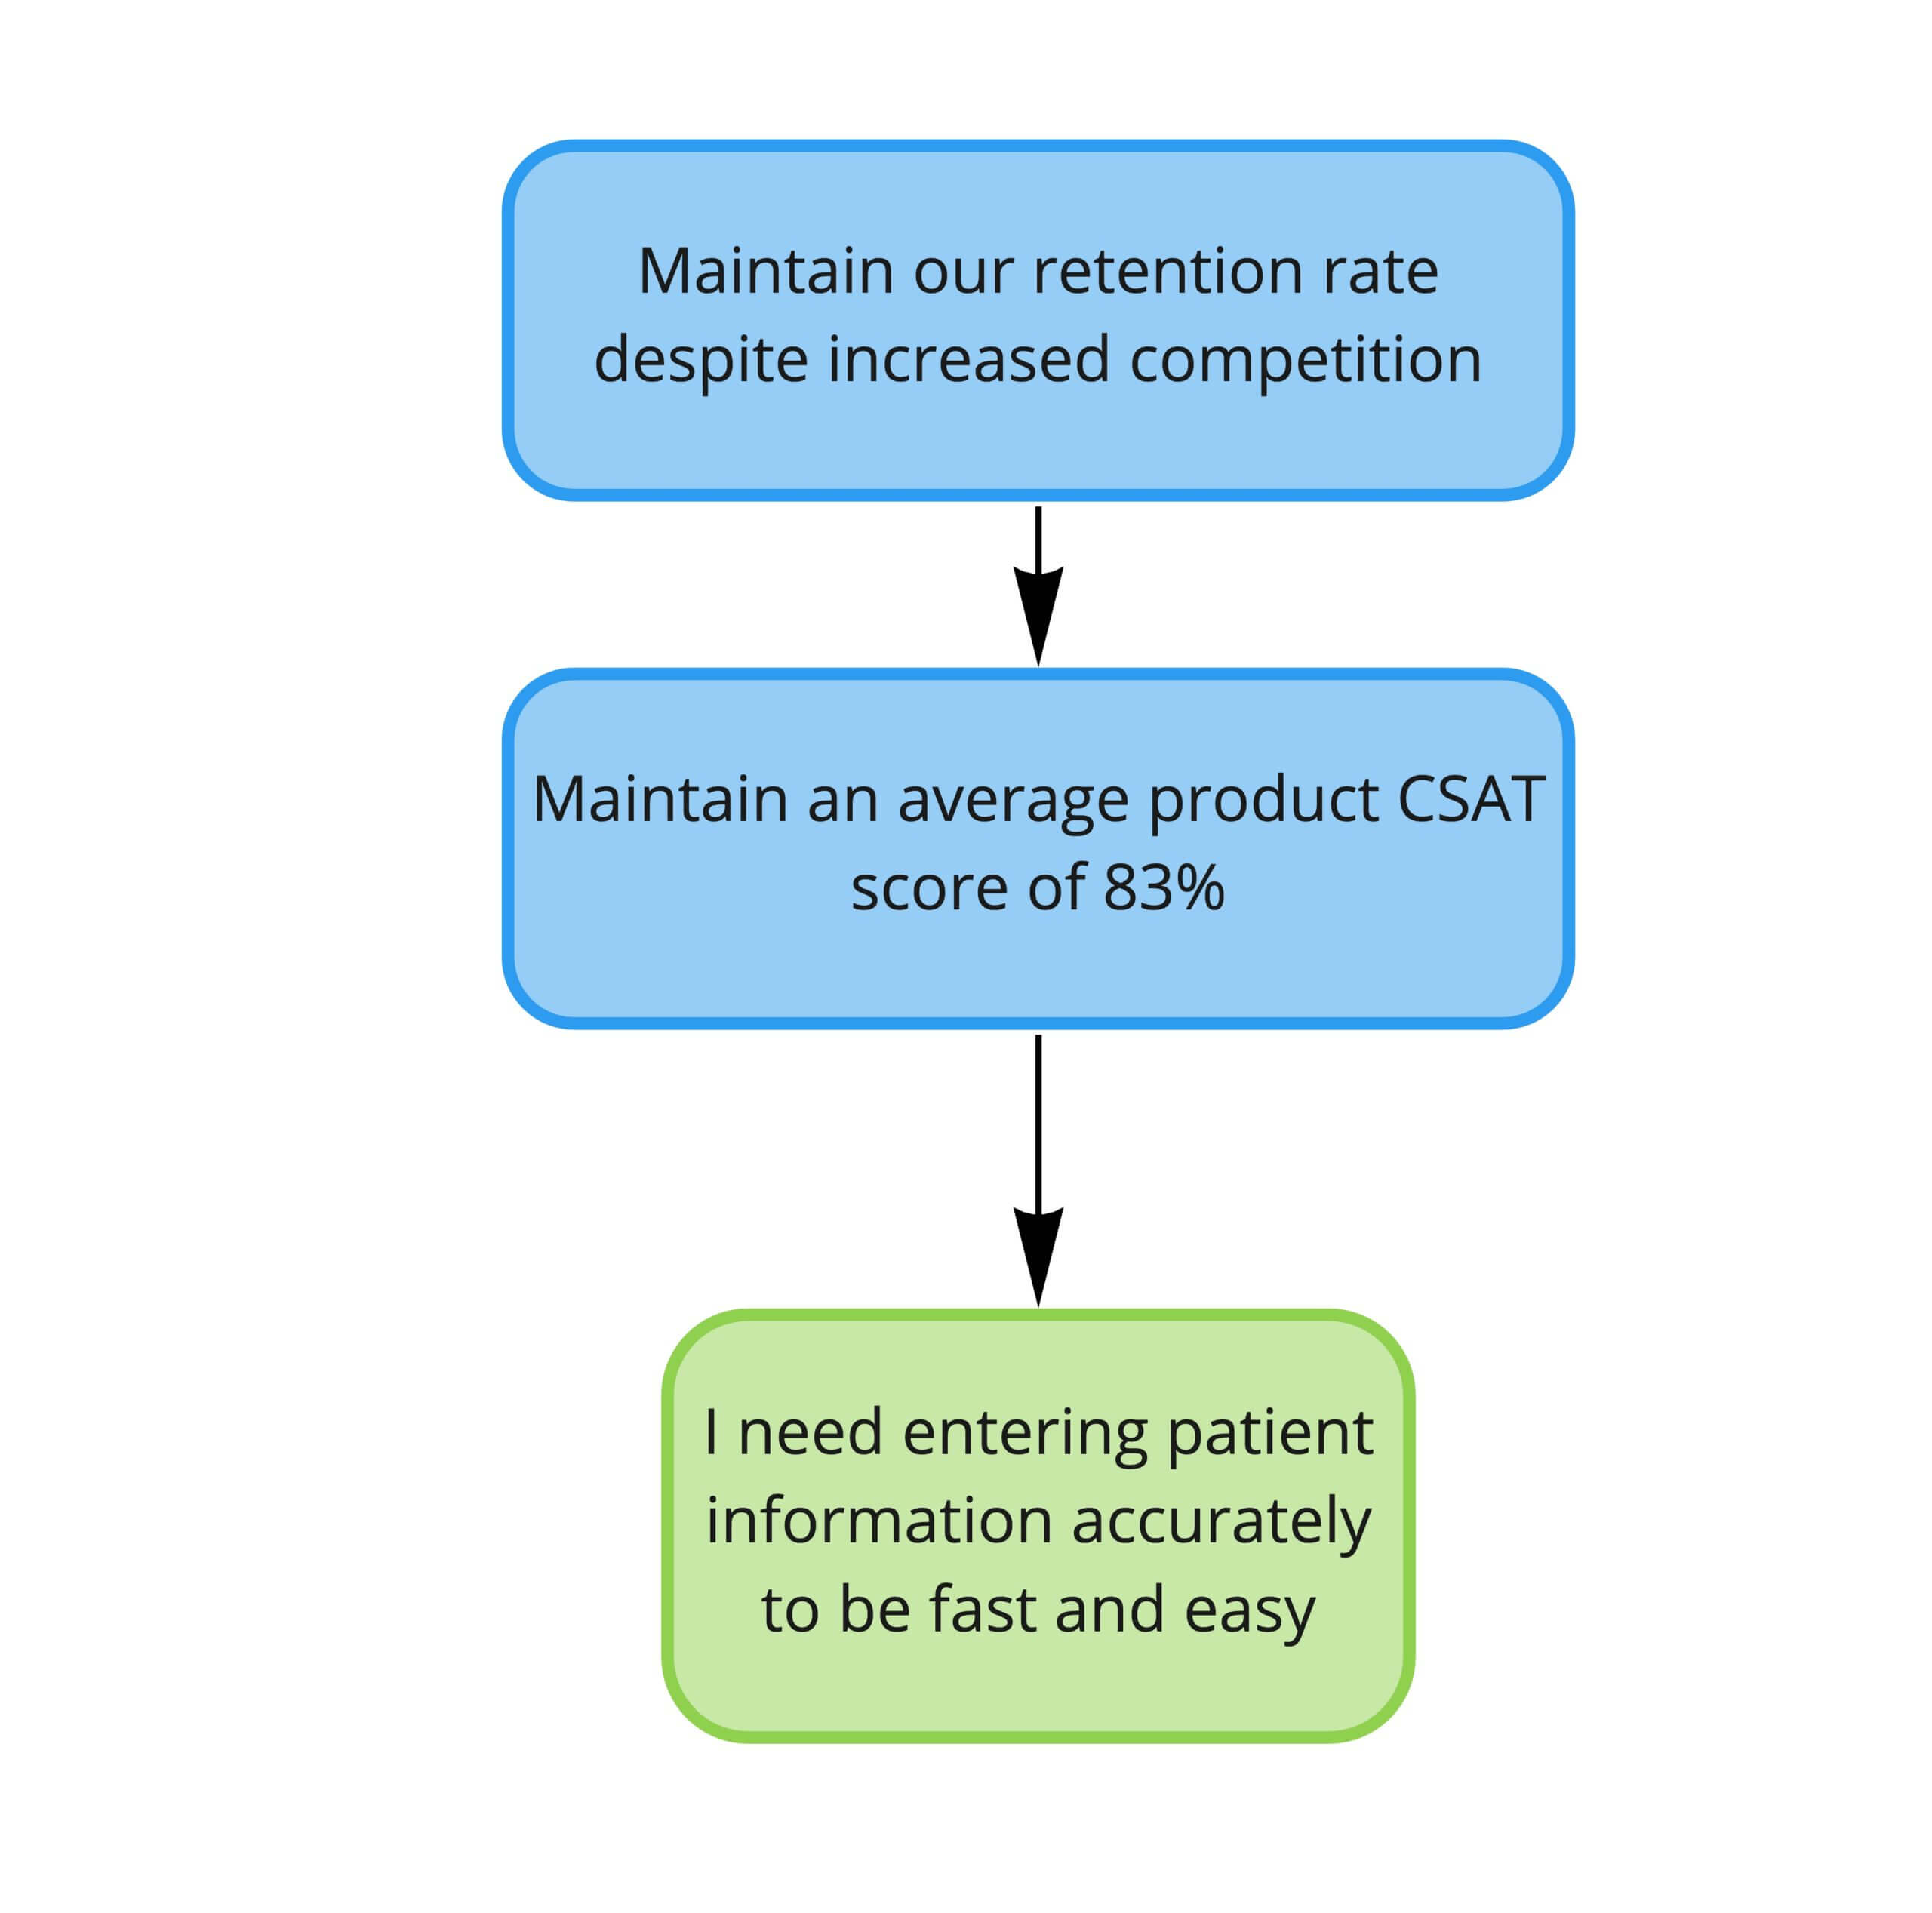 """Alt text: A simple diagram showing three bubbles. The one at the top reads, """"Maintain our retention rate despite increased competition."""" It has an arrow pointing to the bubble below it which reads, """"Maintain an average product CSAT score of 83%."""" This bubble has an arrow which points to the bubble below it, which reads, """"I need entering patient information accurately to be fast and easy."""""""